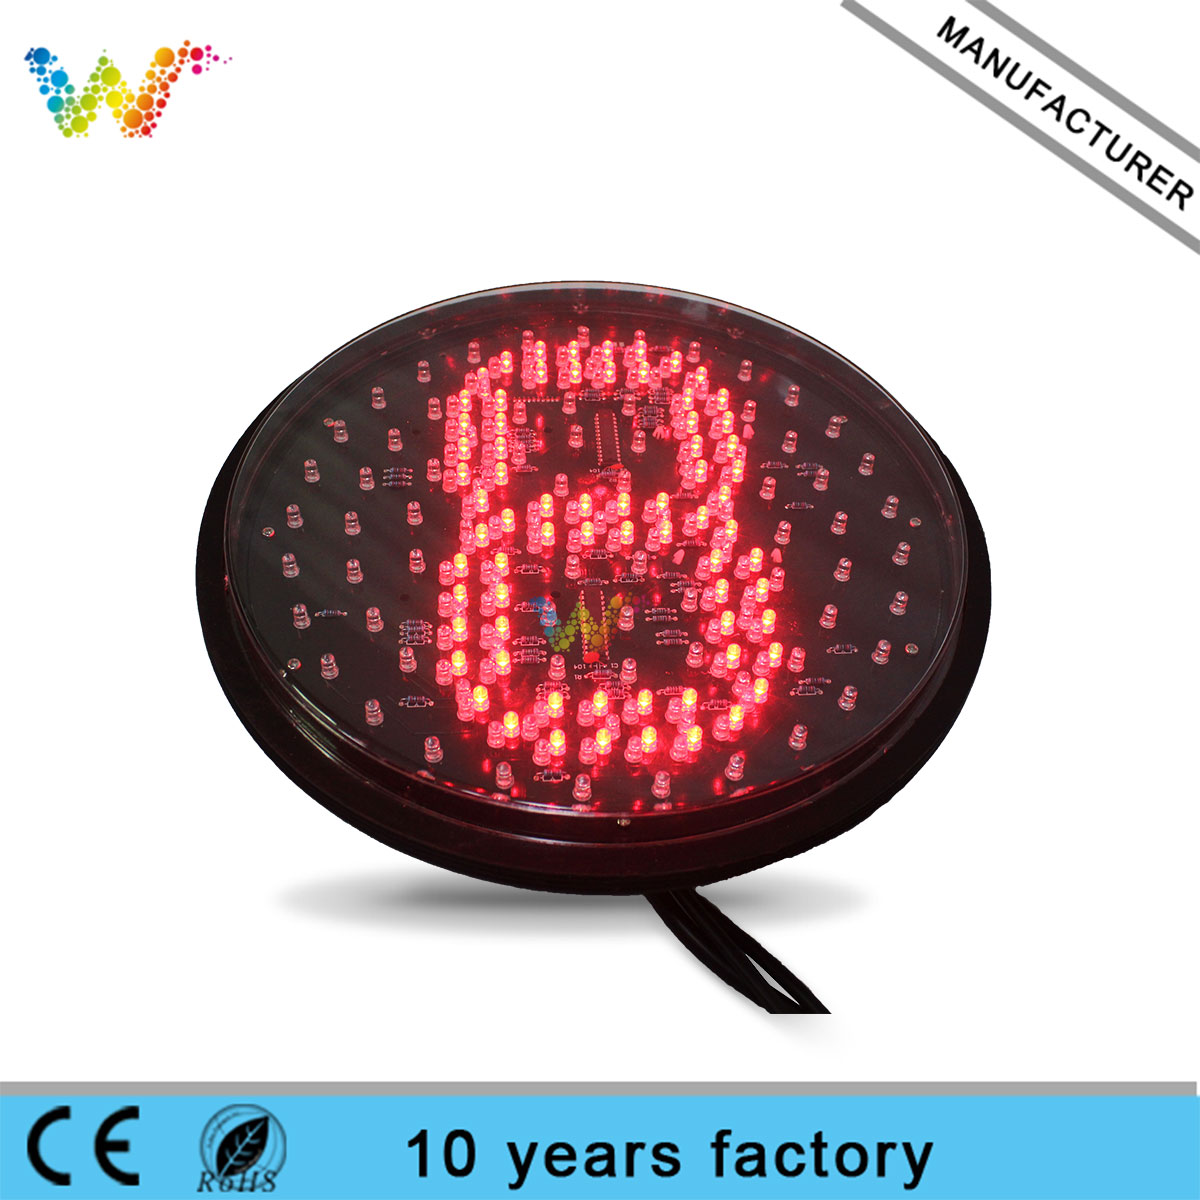 300mm yellow full plate with single 8 countdown timer traffic light lampwick